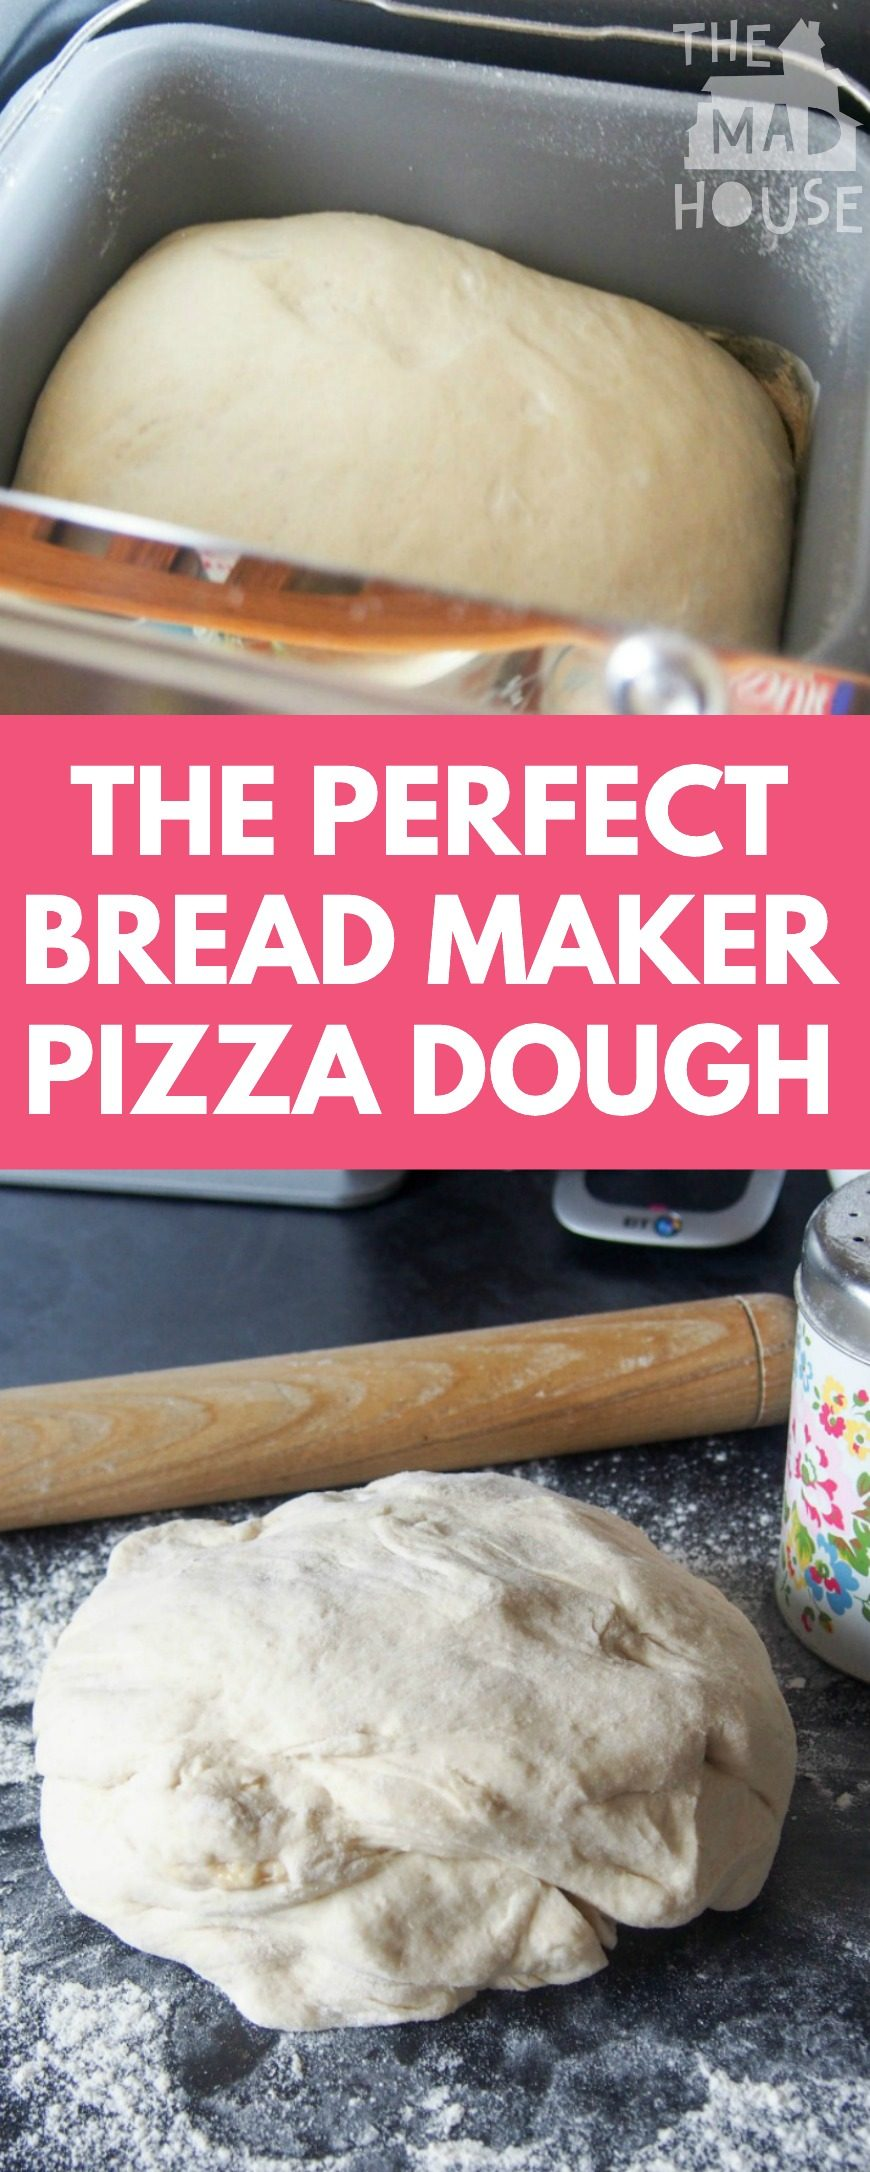 A delicious and fail-safe recipe for perfect breadmaker pizza dough every time. How to make the perfect bread maker pizza dough